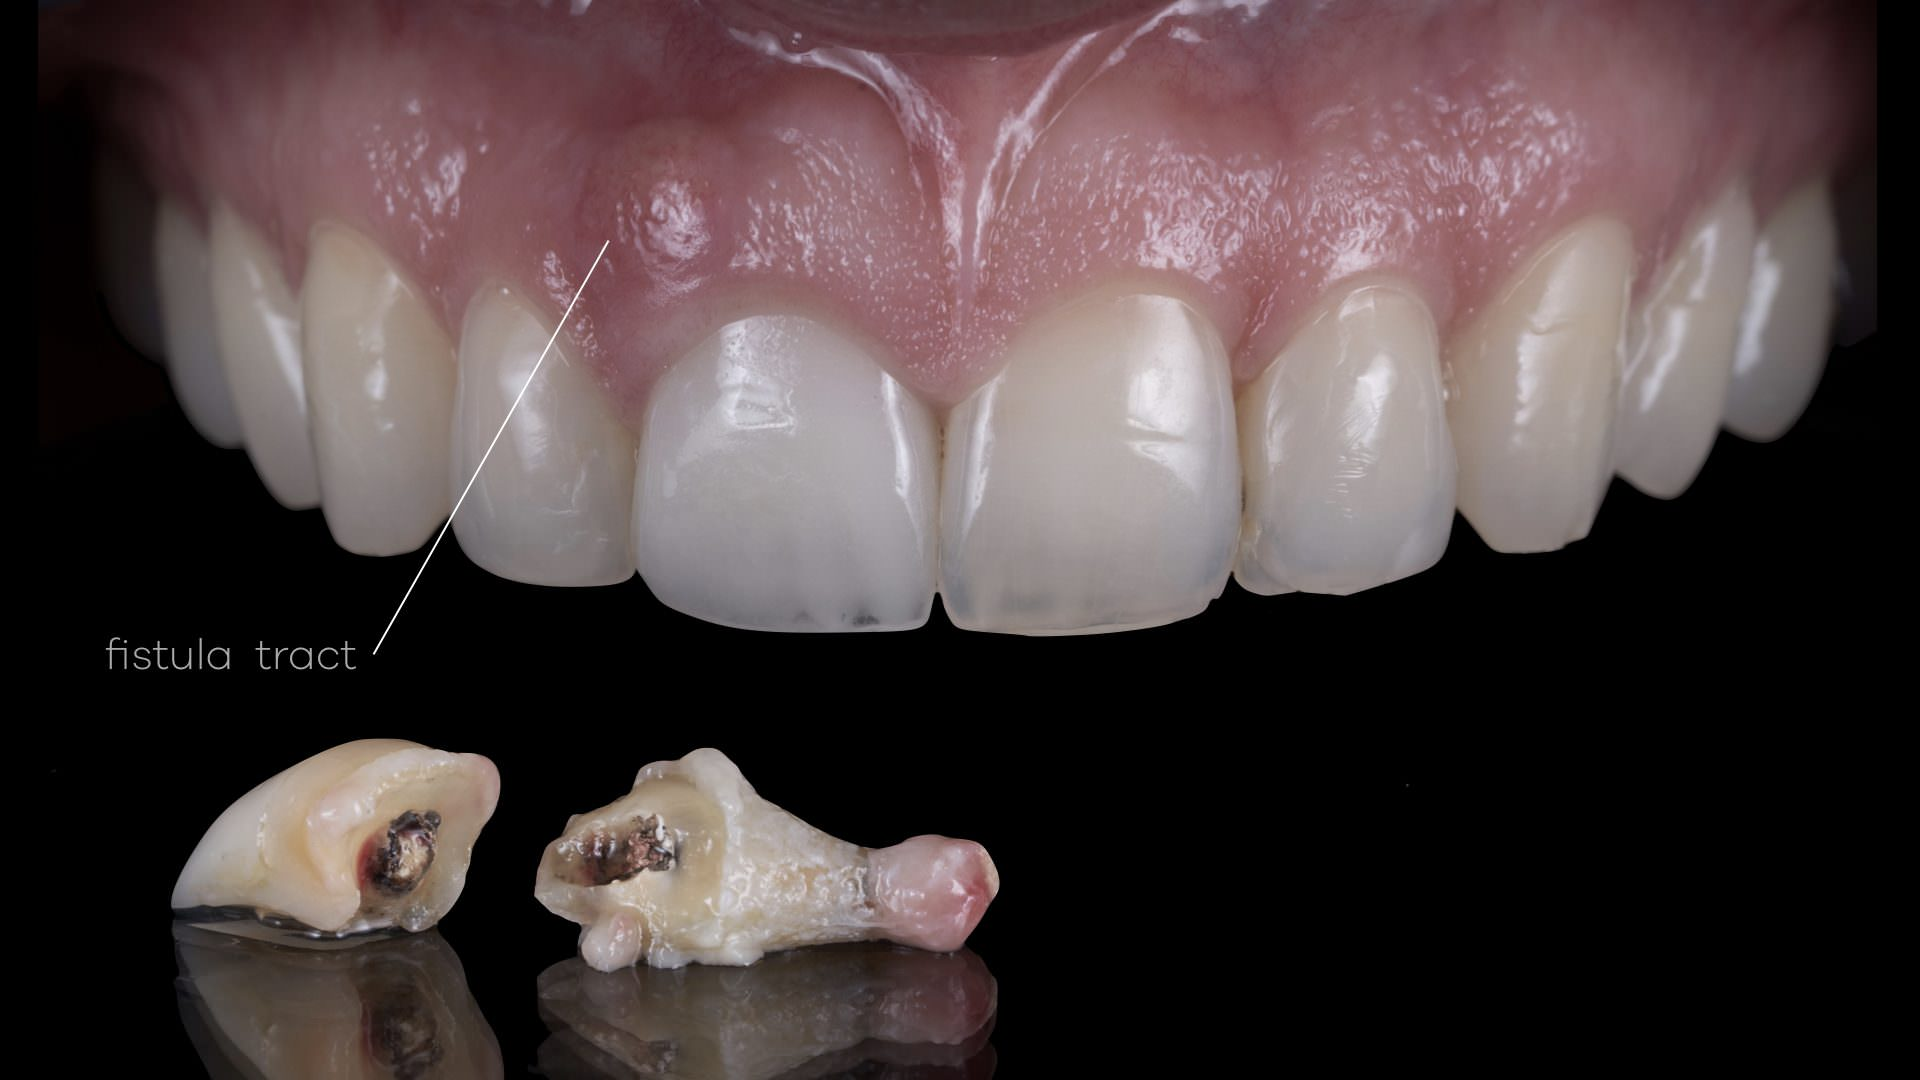 Fractured tooth diagnosis for Nobel Biocare Implant Treatment